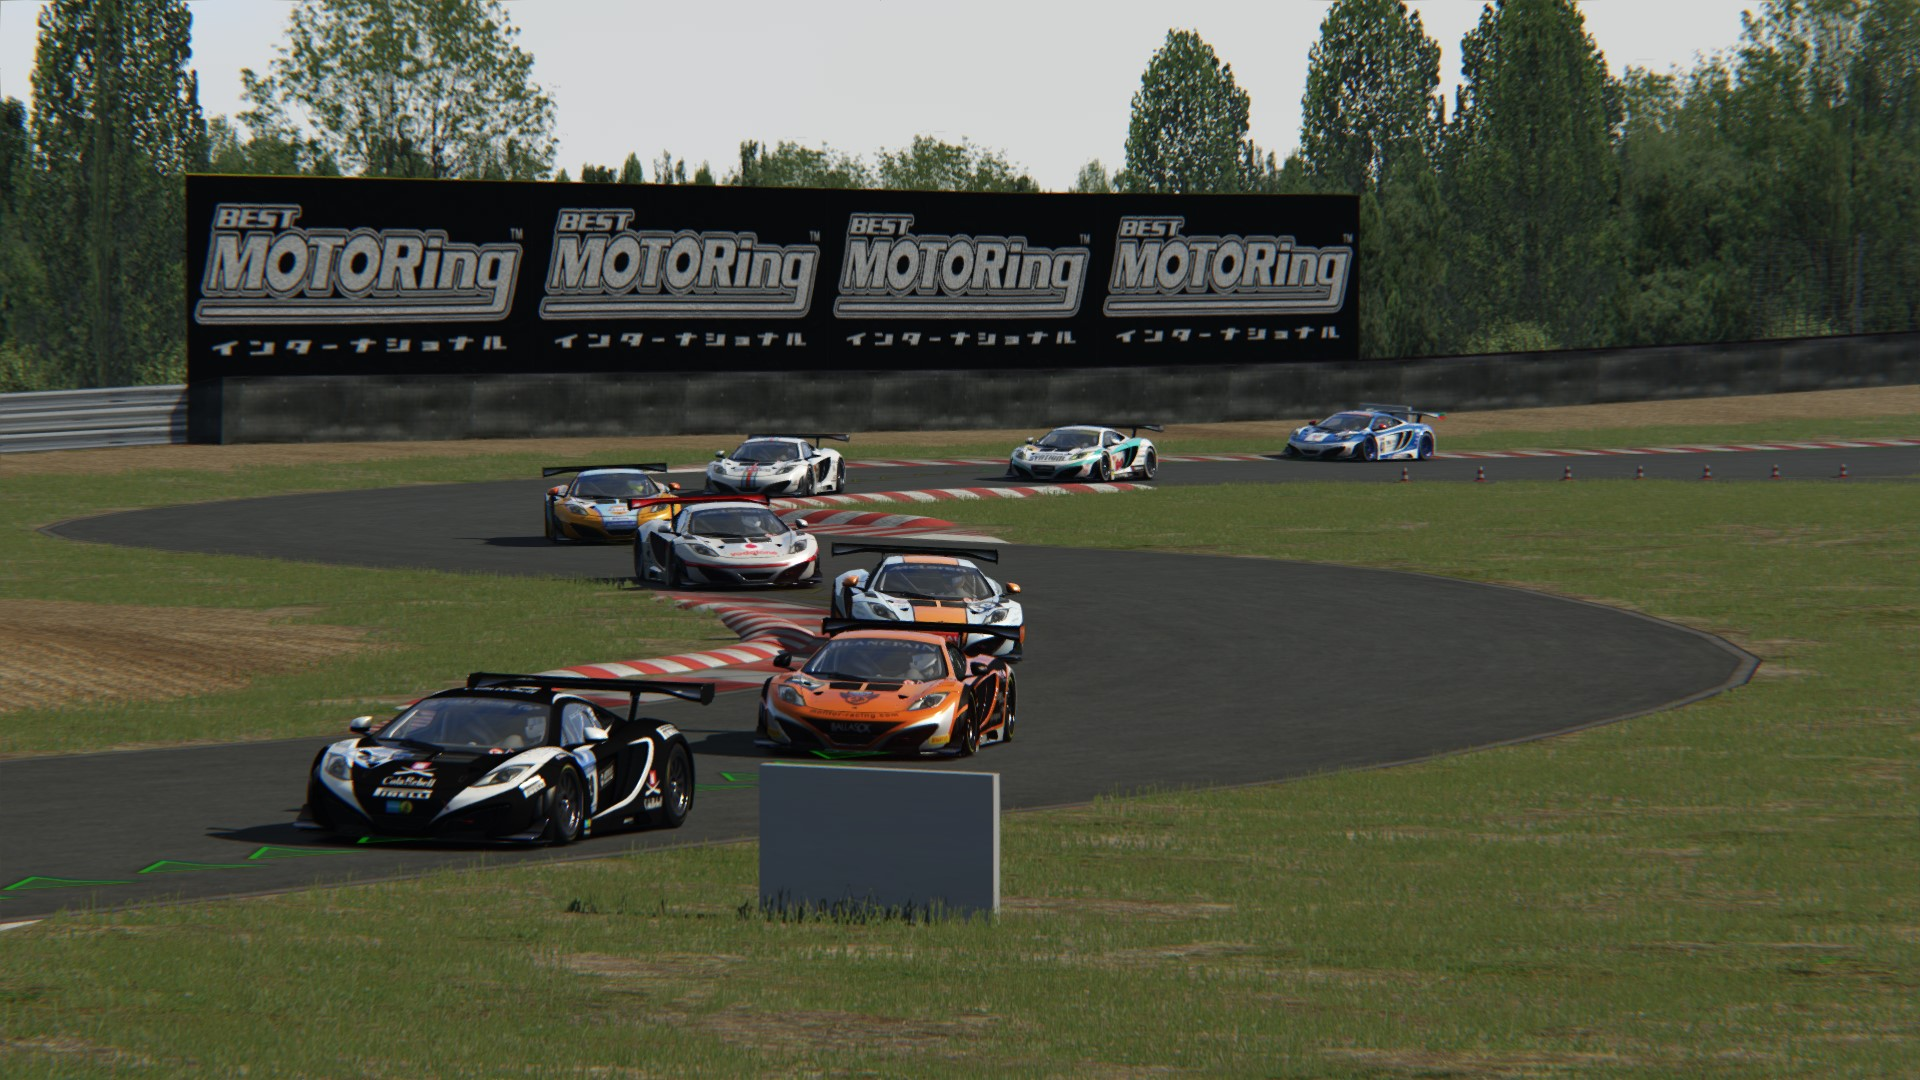 Screenshot_mclaren_mp412c_gt3_sportsland_sugo_7-4-116-10-33-17.jpg